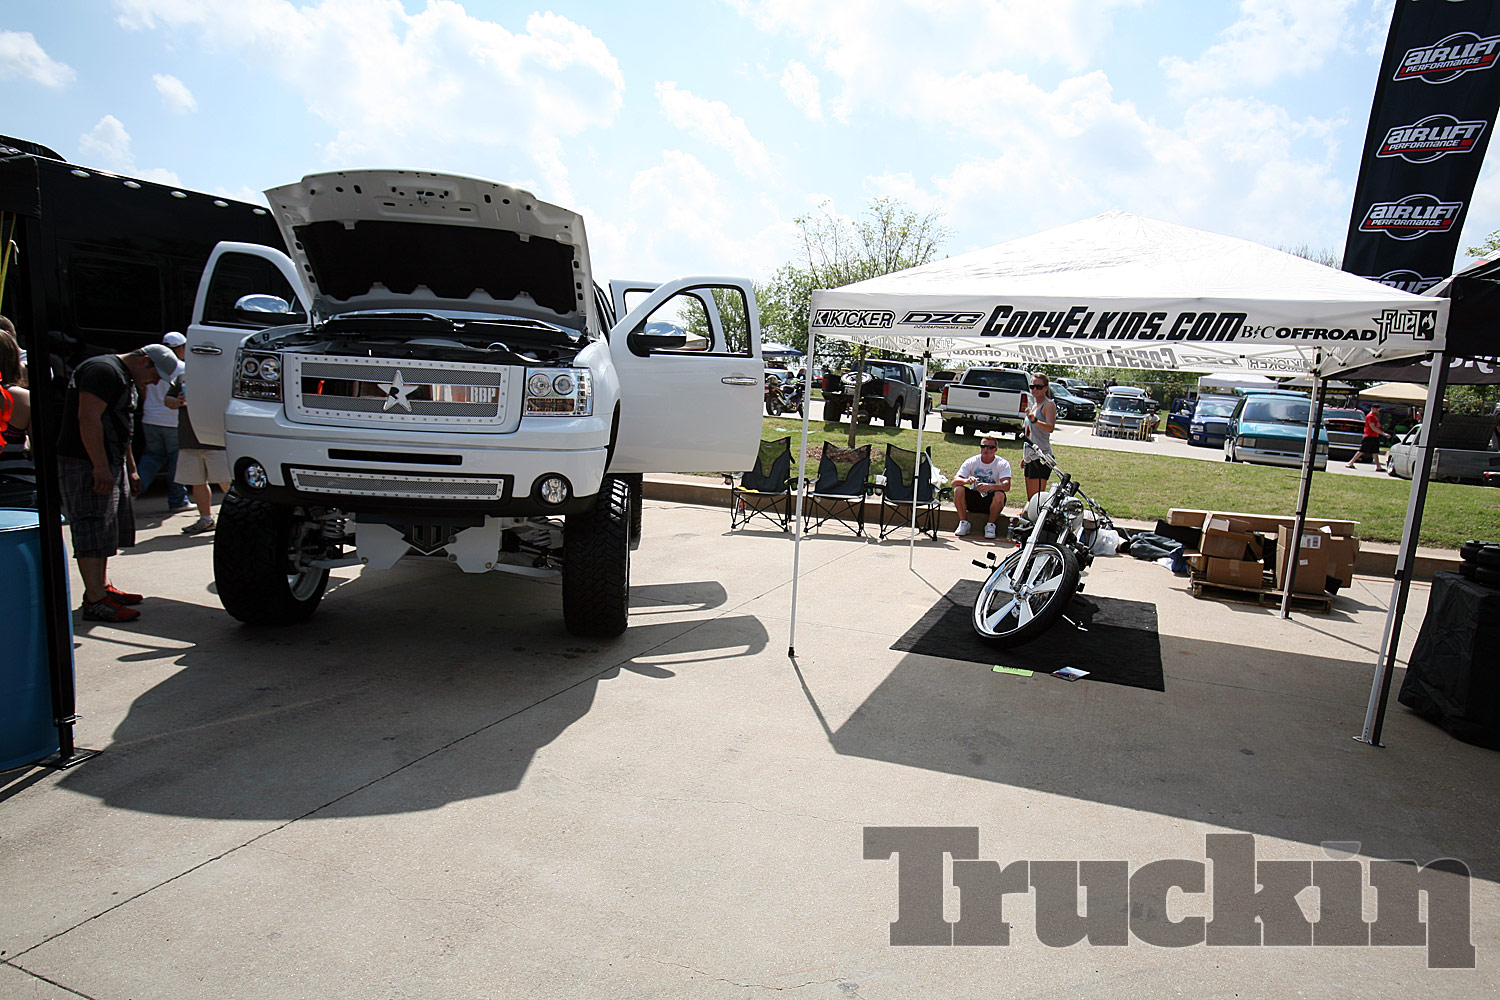 kicker Bash 2012 car And Truck Show